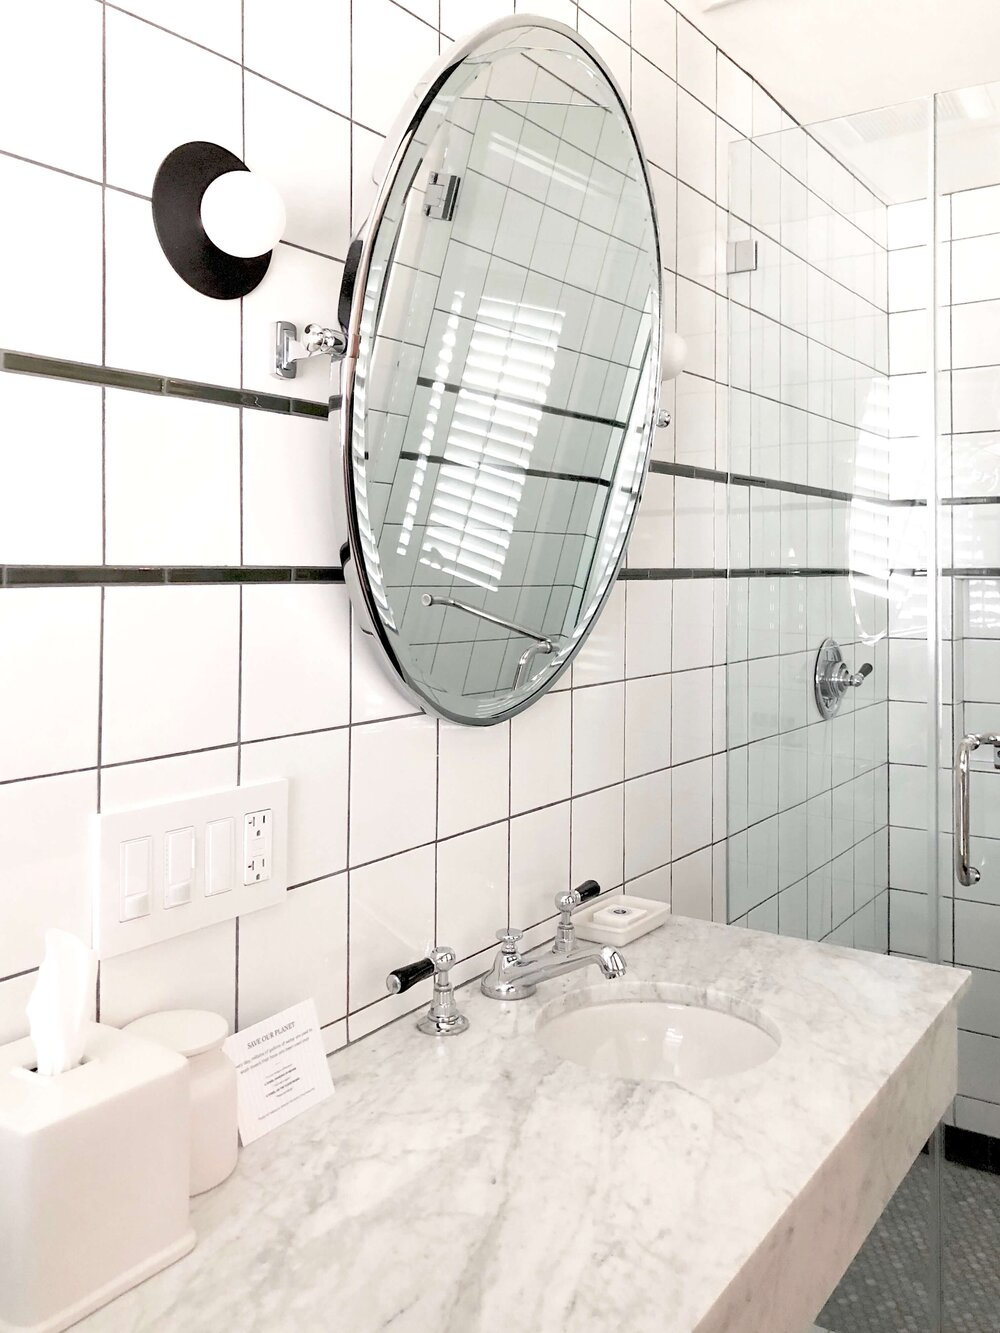 Small Bathroom Design Tips - Hotel bathroom with Carrara marble countertop and small round sink.